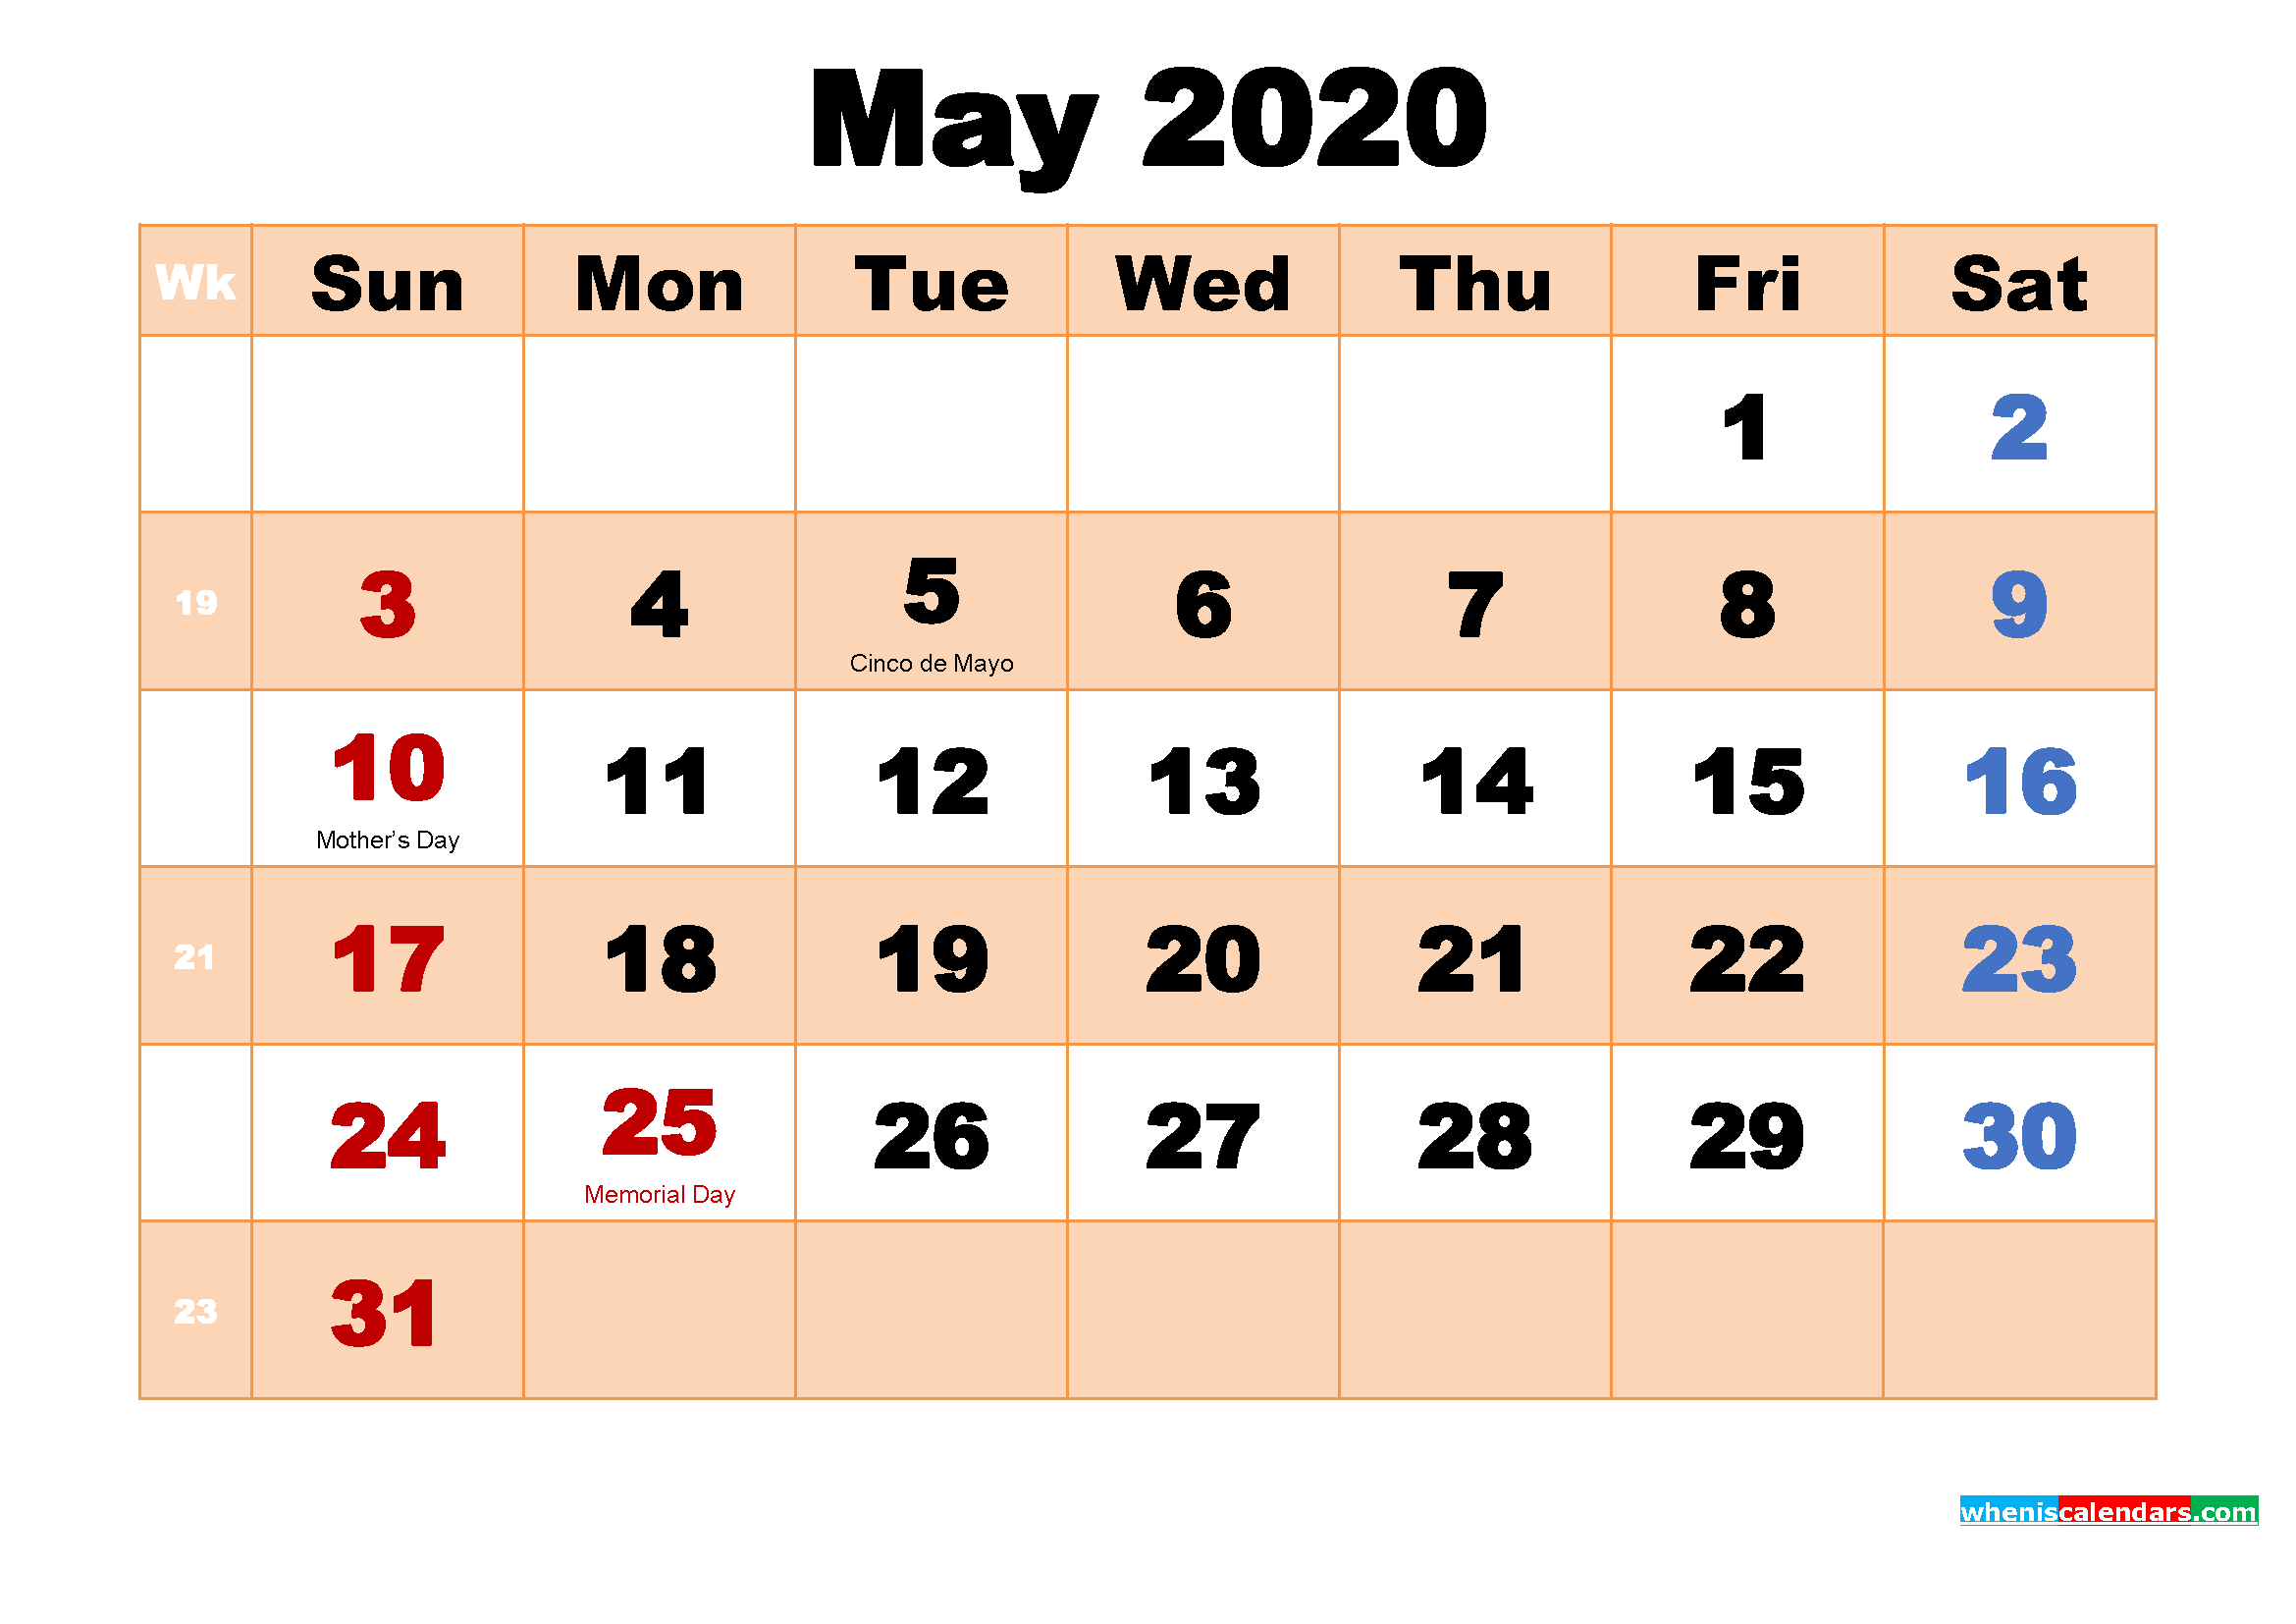 May 2020 Calendar with Holidays Wallpaper